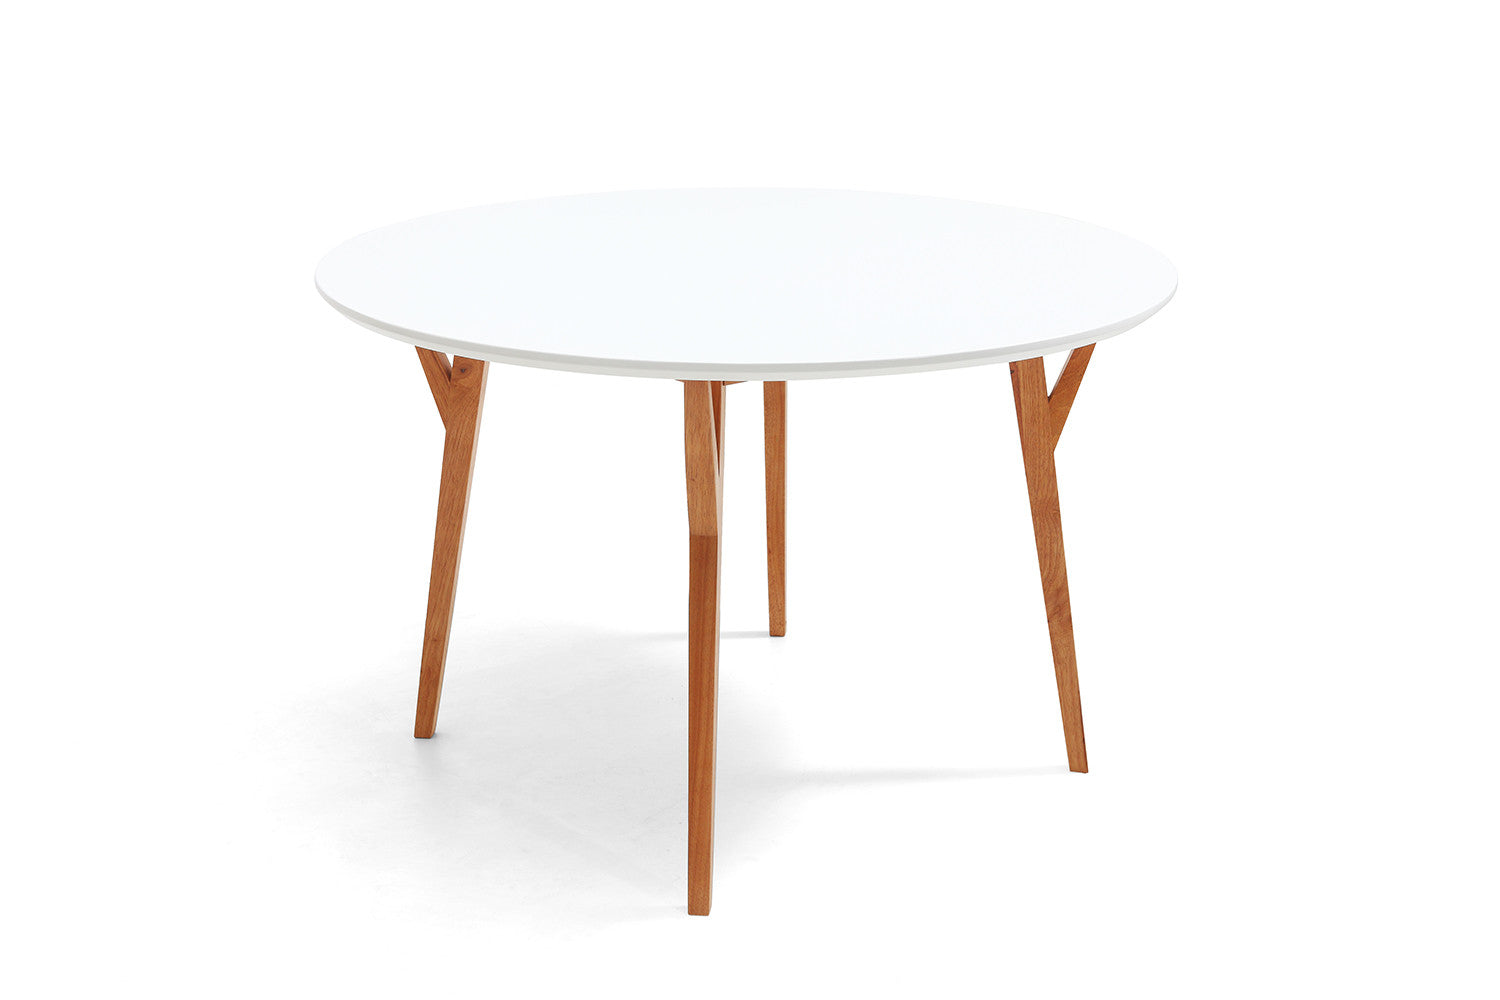 Table de salle manger ronde design scandinave moesa for Table salle manger design